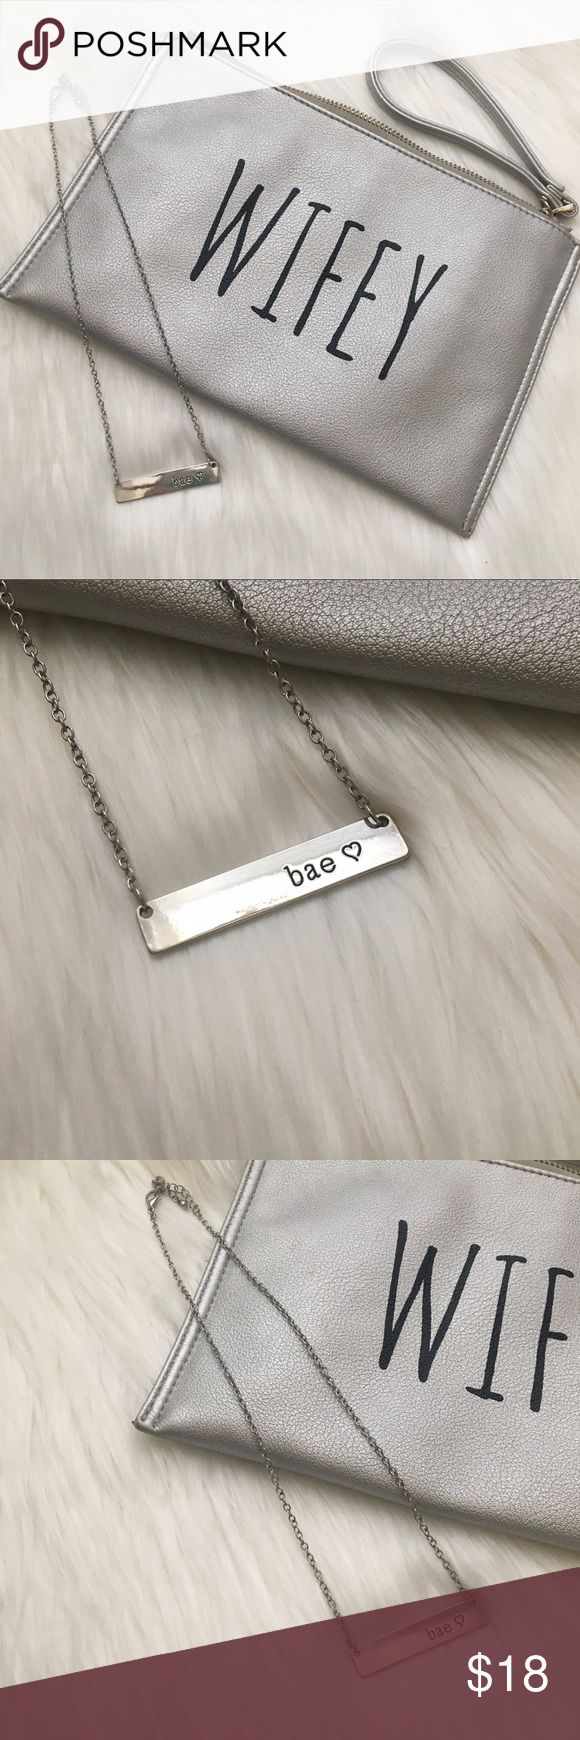 """Silver Duo Wifey Clutch and BAE Bar Necklace Super cute duo with this 16""""-18"""" adjustable bae necklace and wifey clutch by Deux Lux. Both gently used but tons of life left. Pics show some wear on the clutch. Make an offer or combine with other items in my closet to discount. Bags Clutches & Wristlets"""